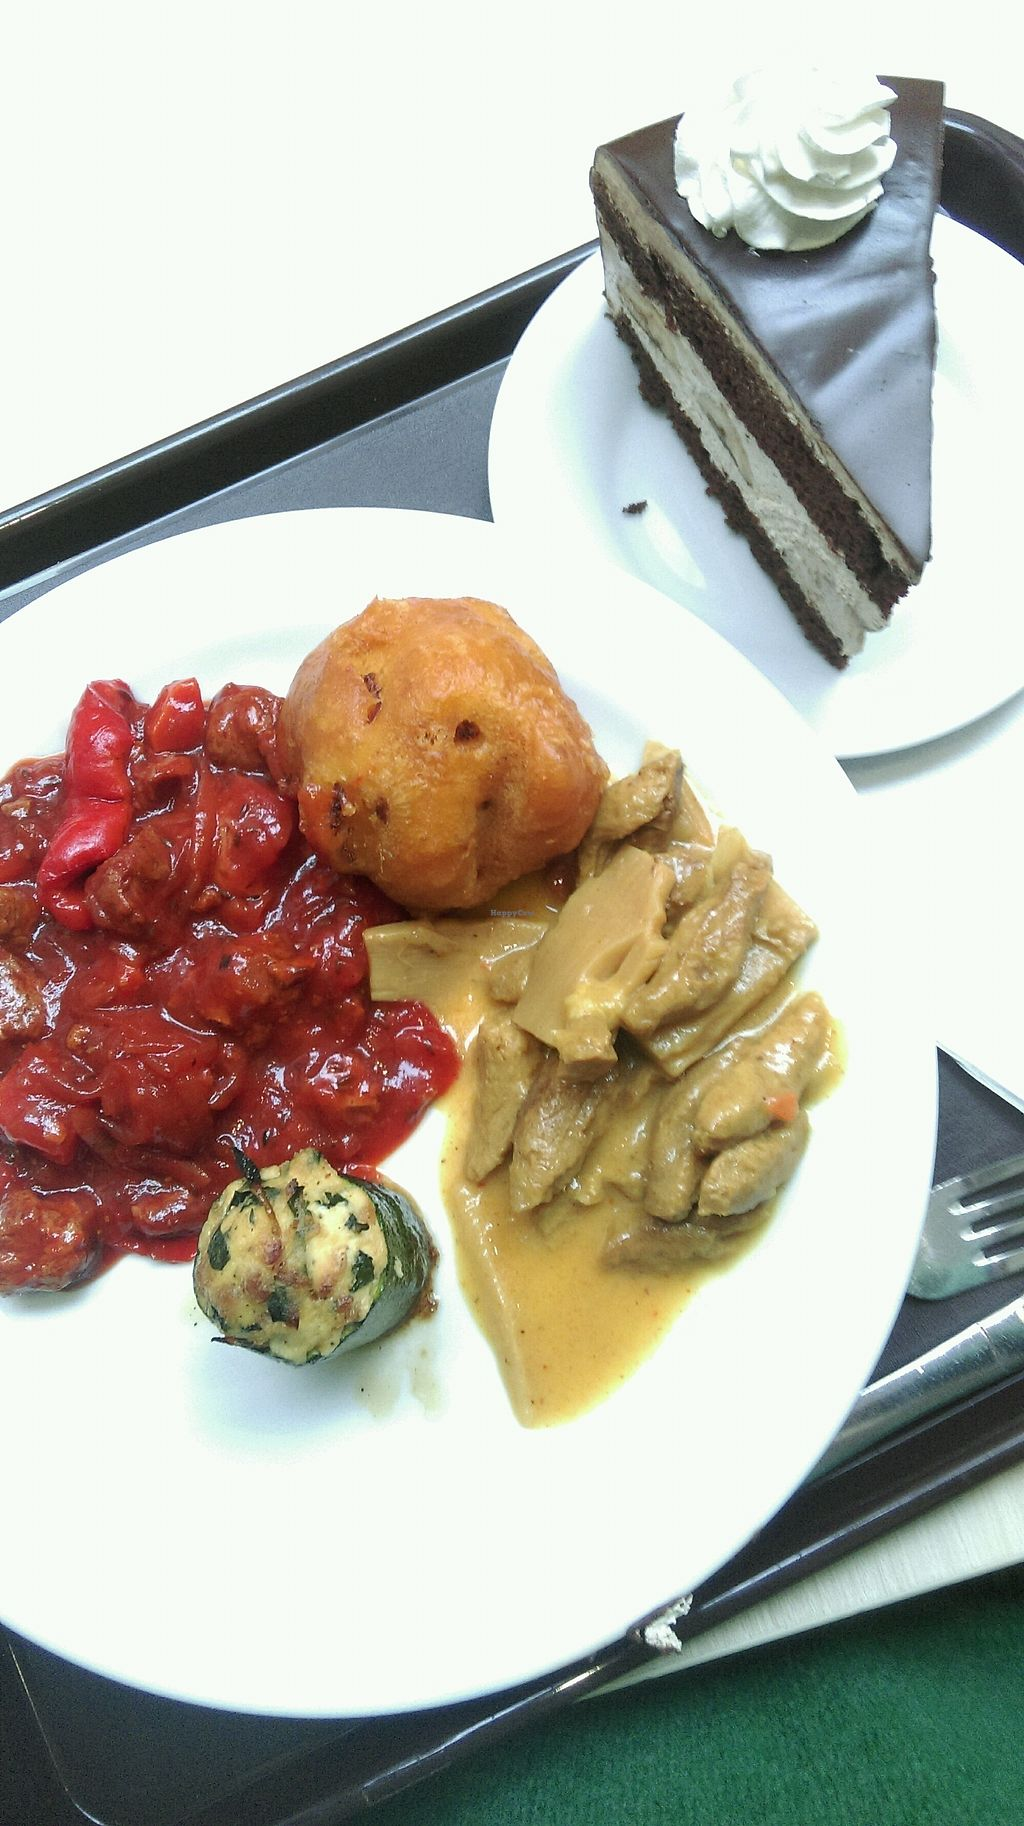 """Photo of Loving Hut - Spalena  by <a href=""""/members/profile/Sirimande"""">Sirimande</a> <br/>buffet food and chocolate cake <br/> April 2, 2018  - <a href='/contact/abuse/image/106853/379834'>Report</a>"""